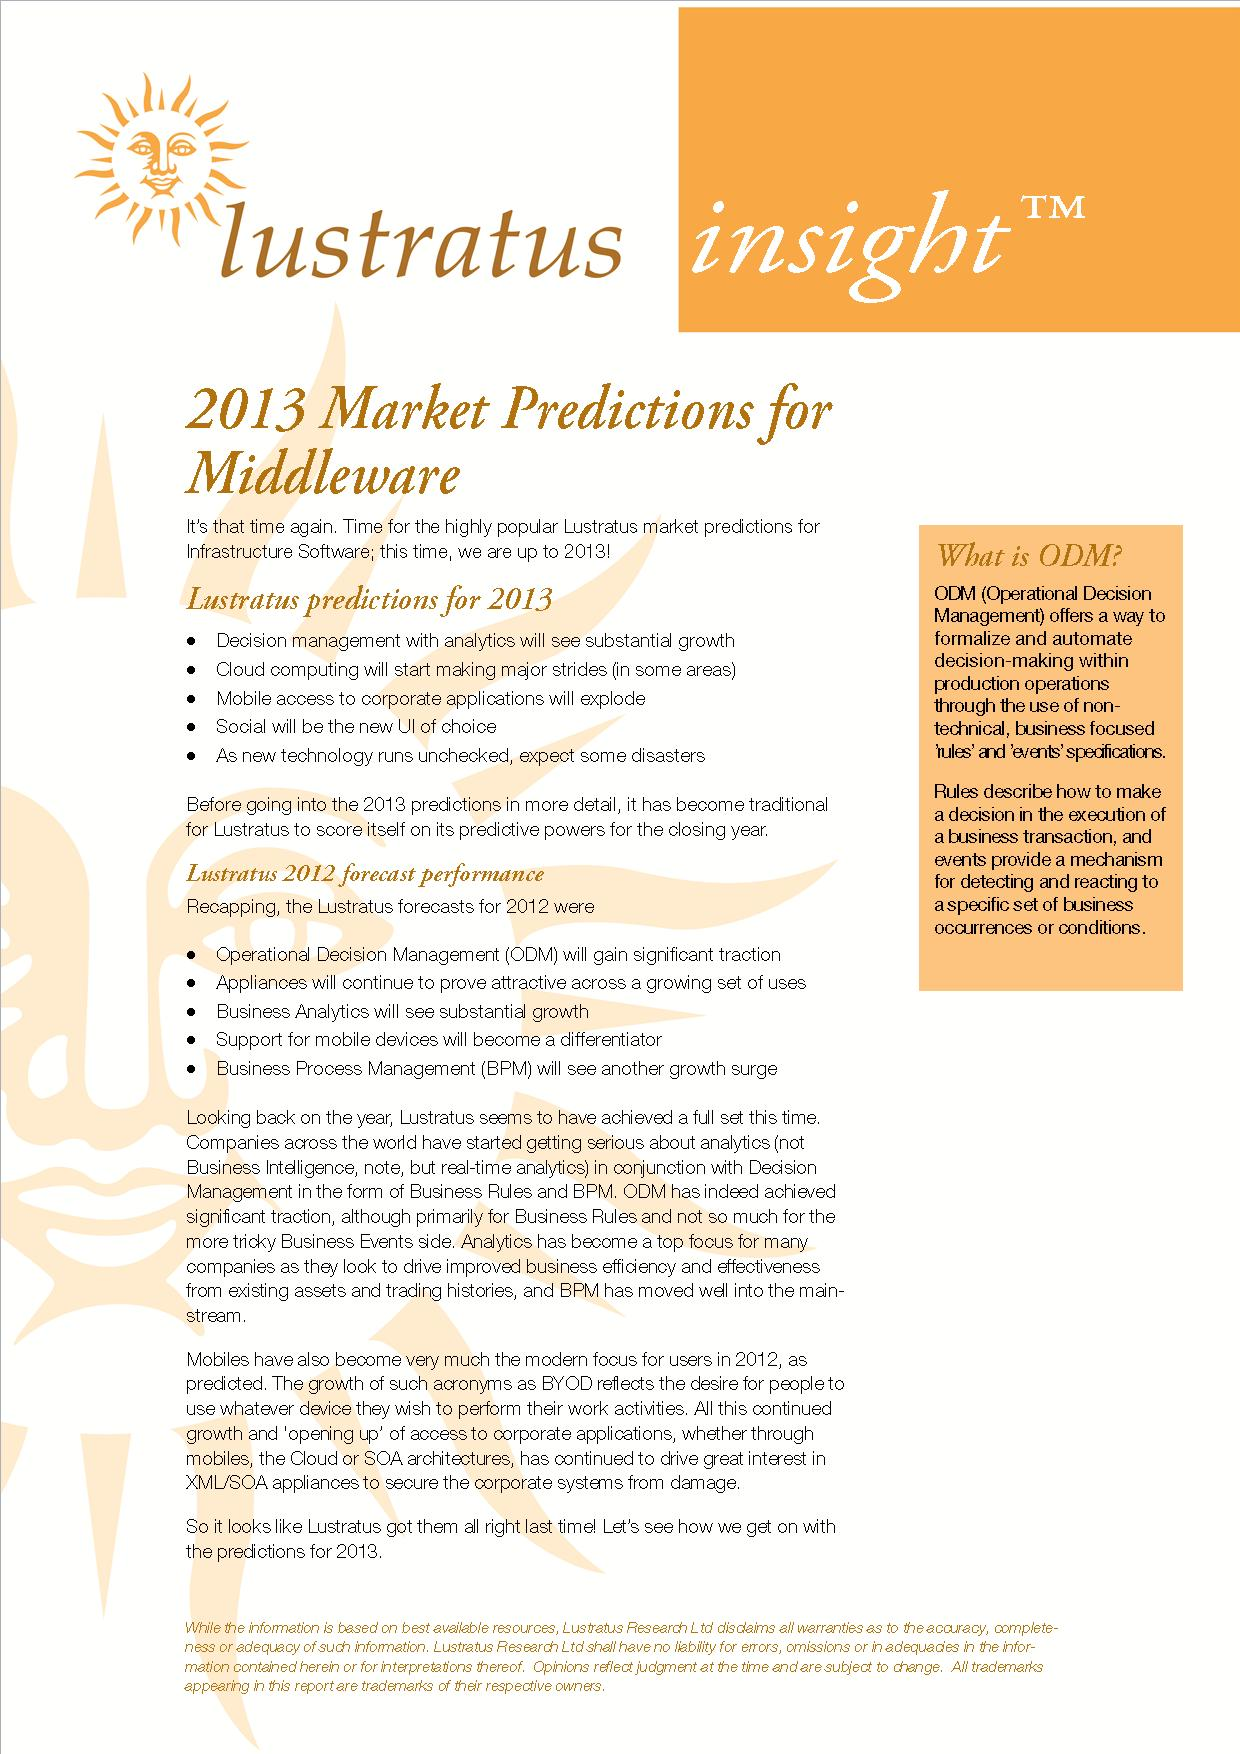 2013 Market predictions for infrastructure software image